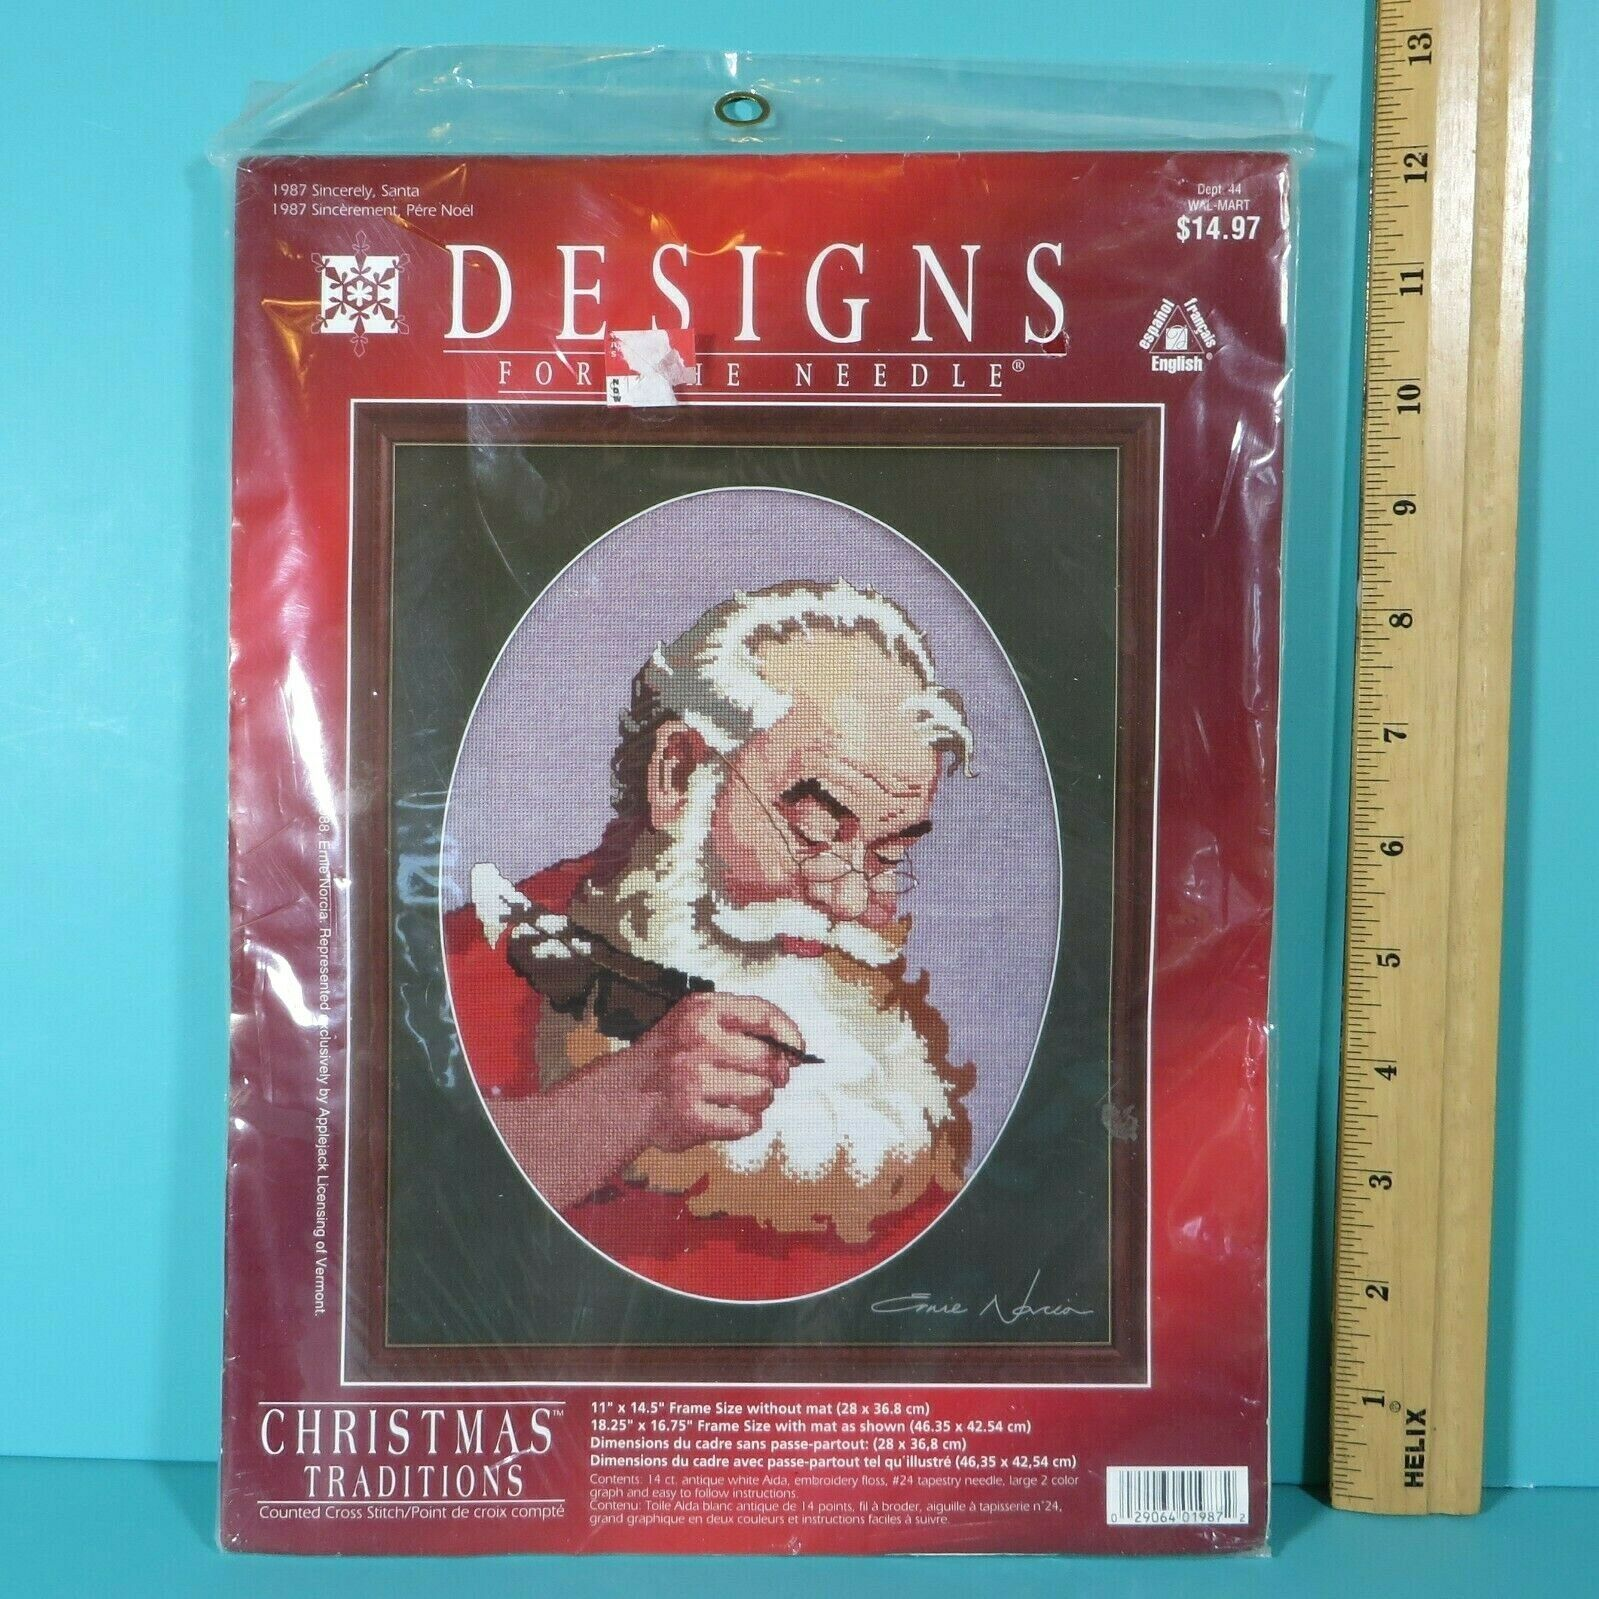 Primary image for Designs For The Needle Christmas Tradition Sincerely Santa 1987 Cross Stitch Kit